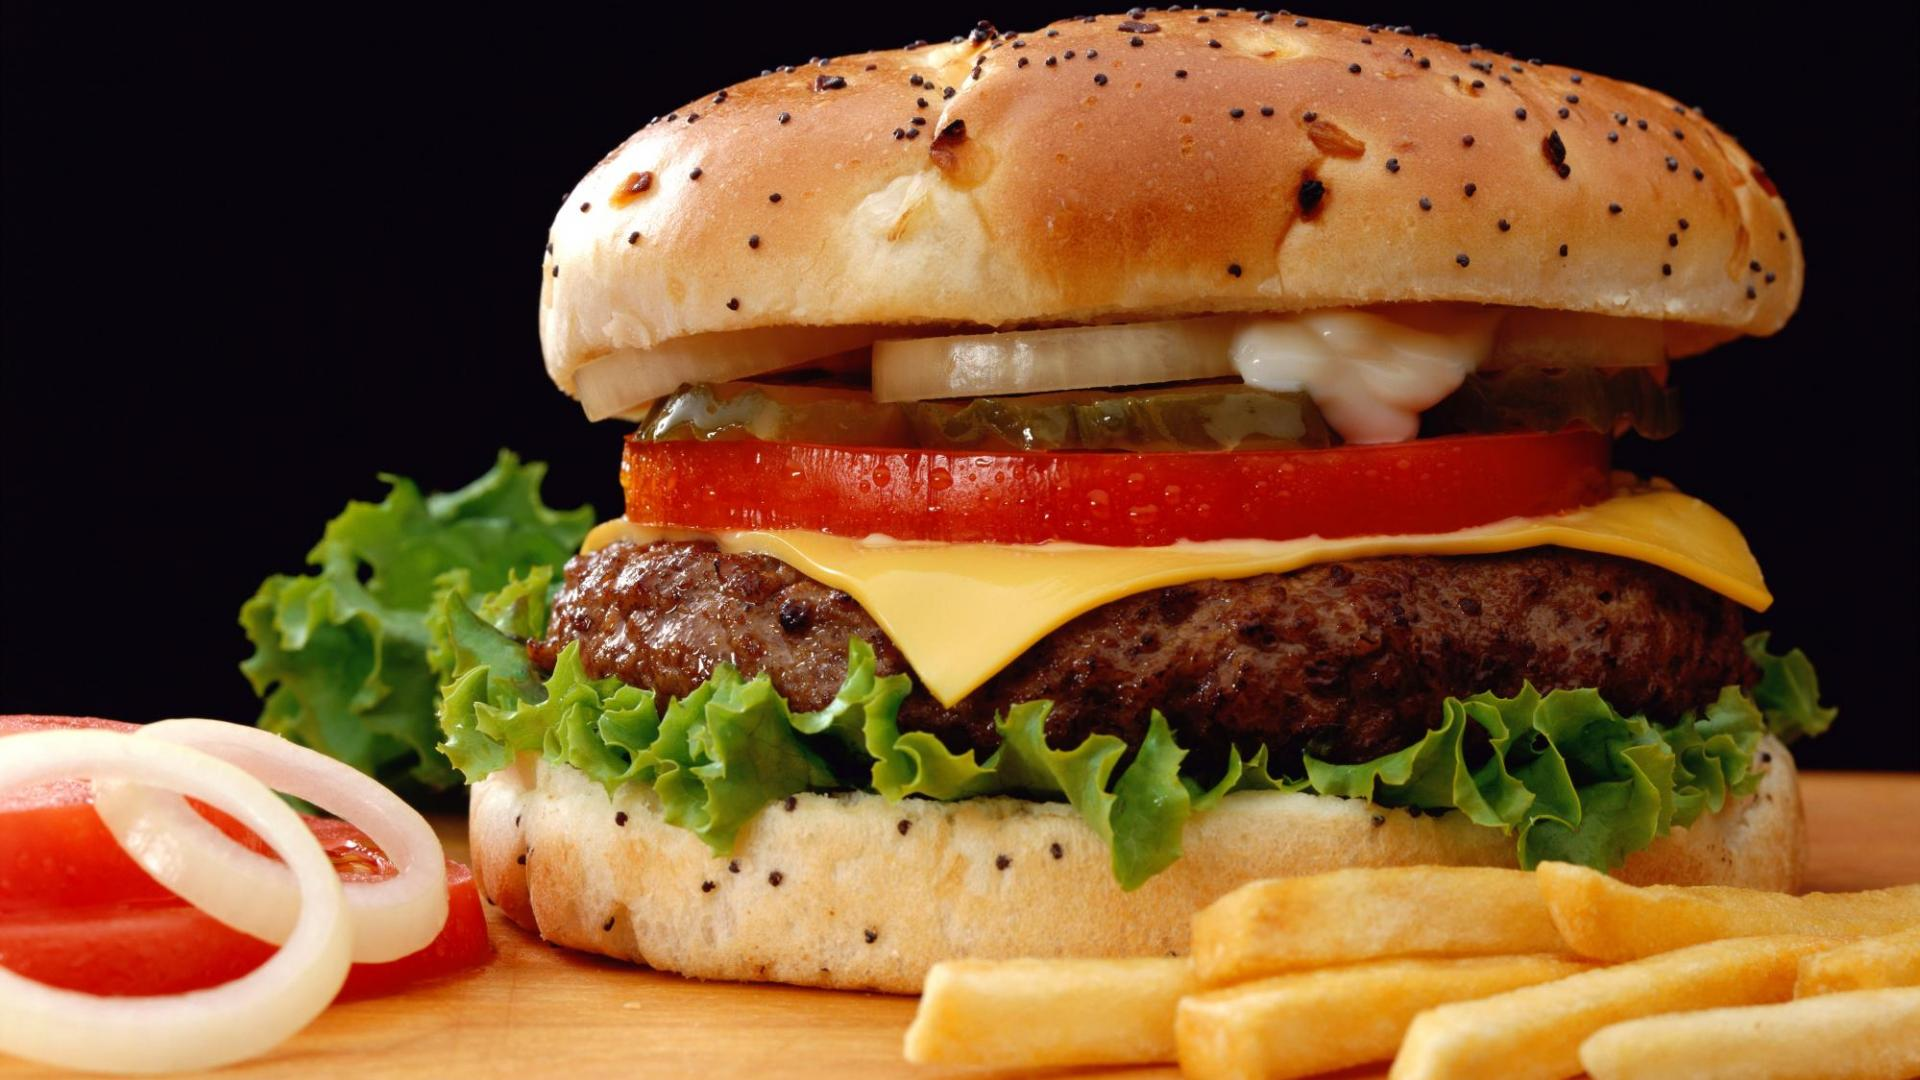 Delicious Hamburger Wallpaper HD Wallpaper